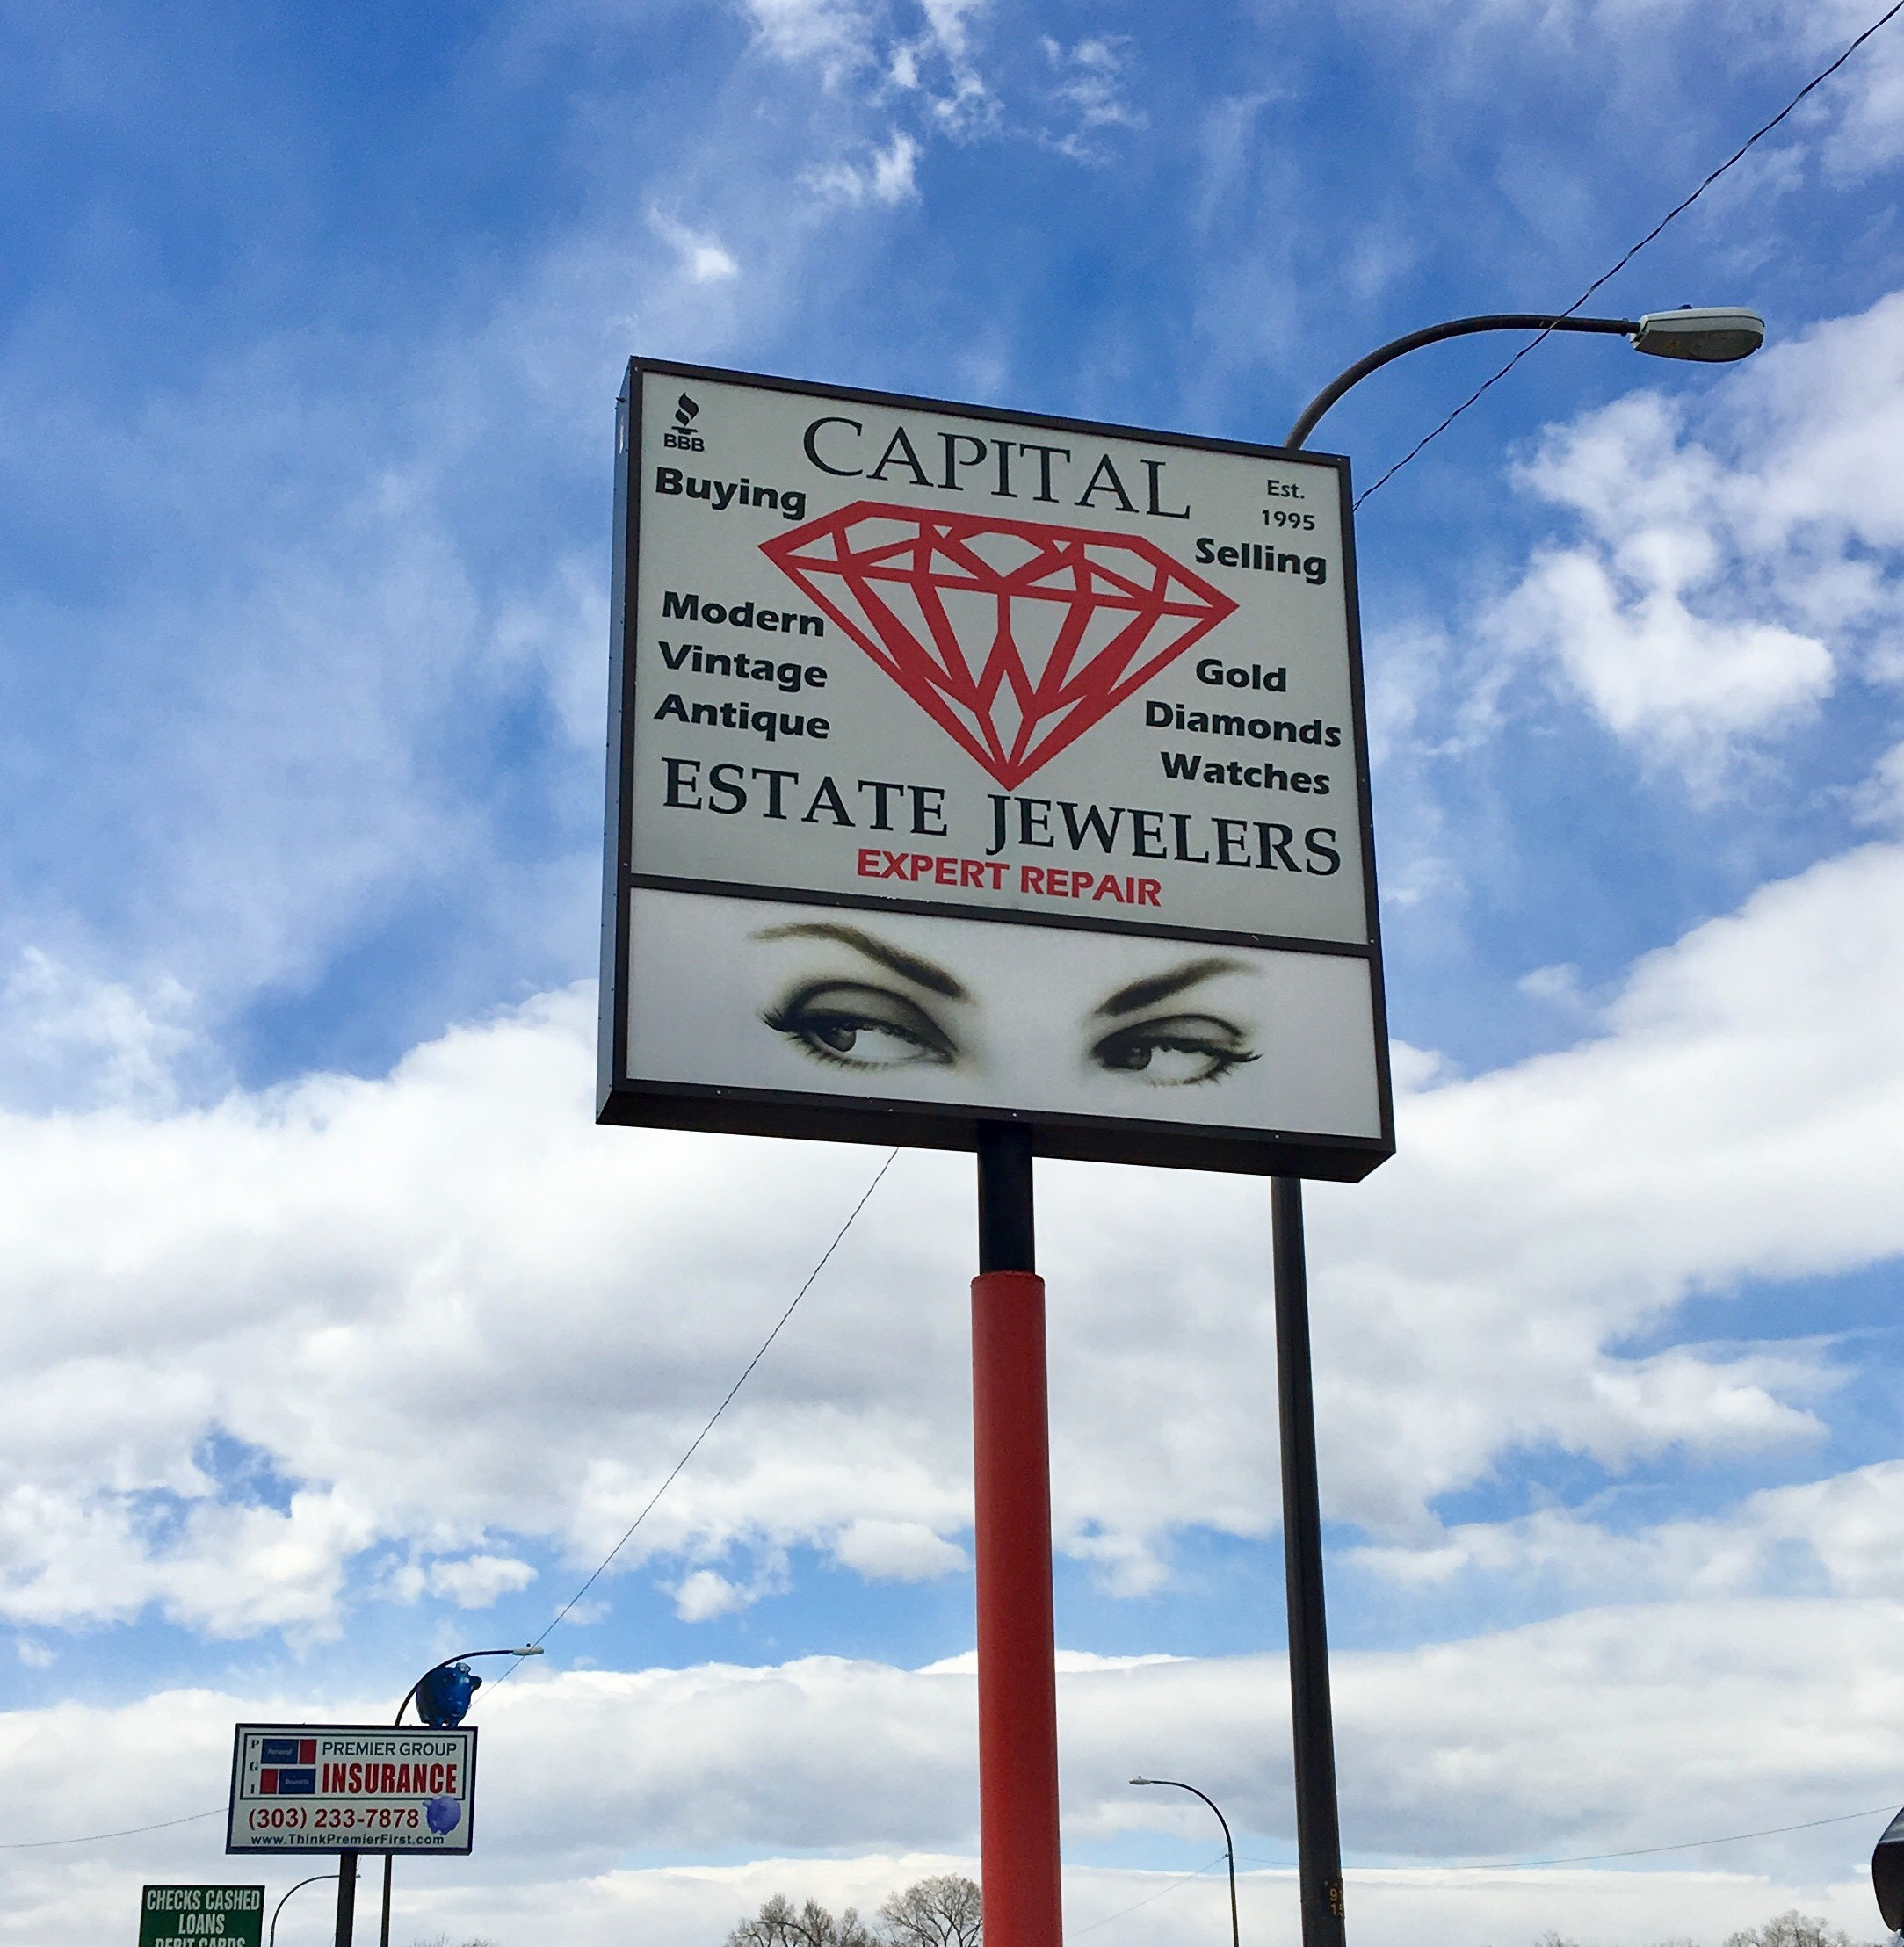 Capital Estate Jewelers 8550 W Colfax Ave, Denver, CO